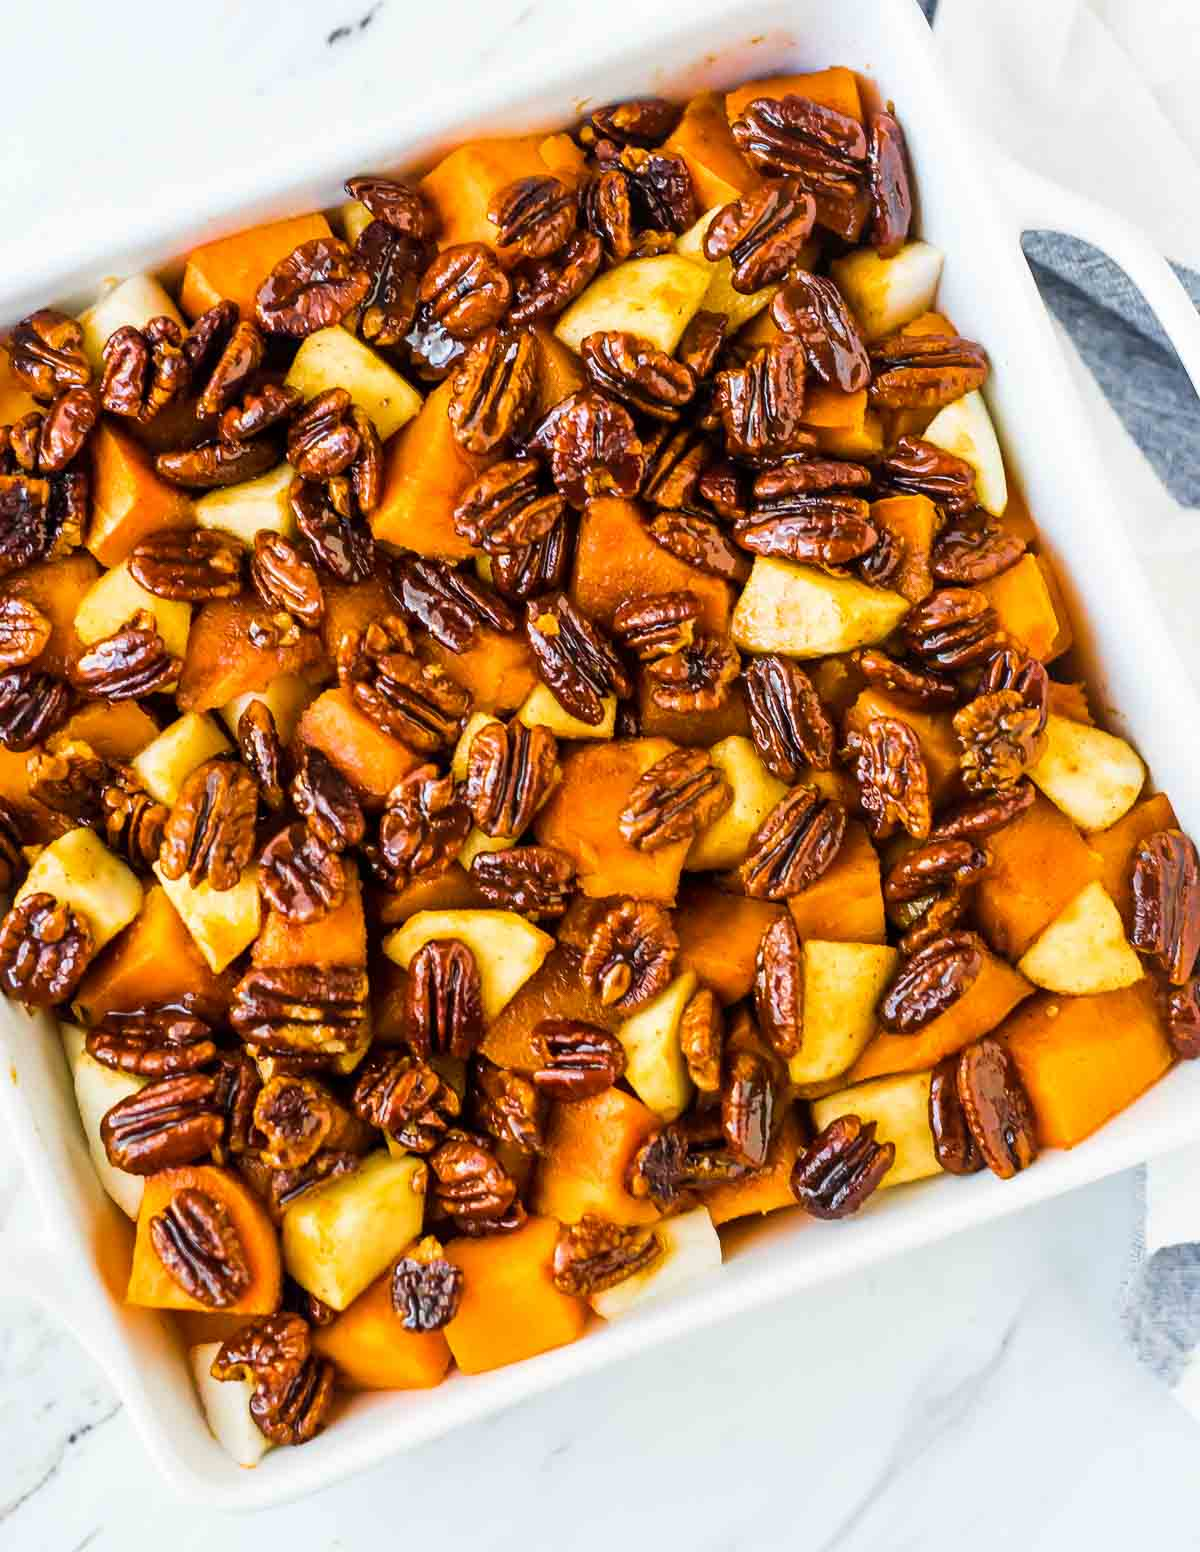 Glazed Sweet Potatoes with Whiskey Pecans. Roasted sweet potatoes and apples in a cinnamon honey butter sauce. Our favorite Thanksgiving side dish recipe! Great recipe for holidays, Christmas or dinner parties. Recipe at wellplated.com | @wellplated